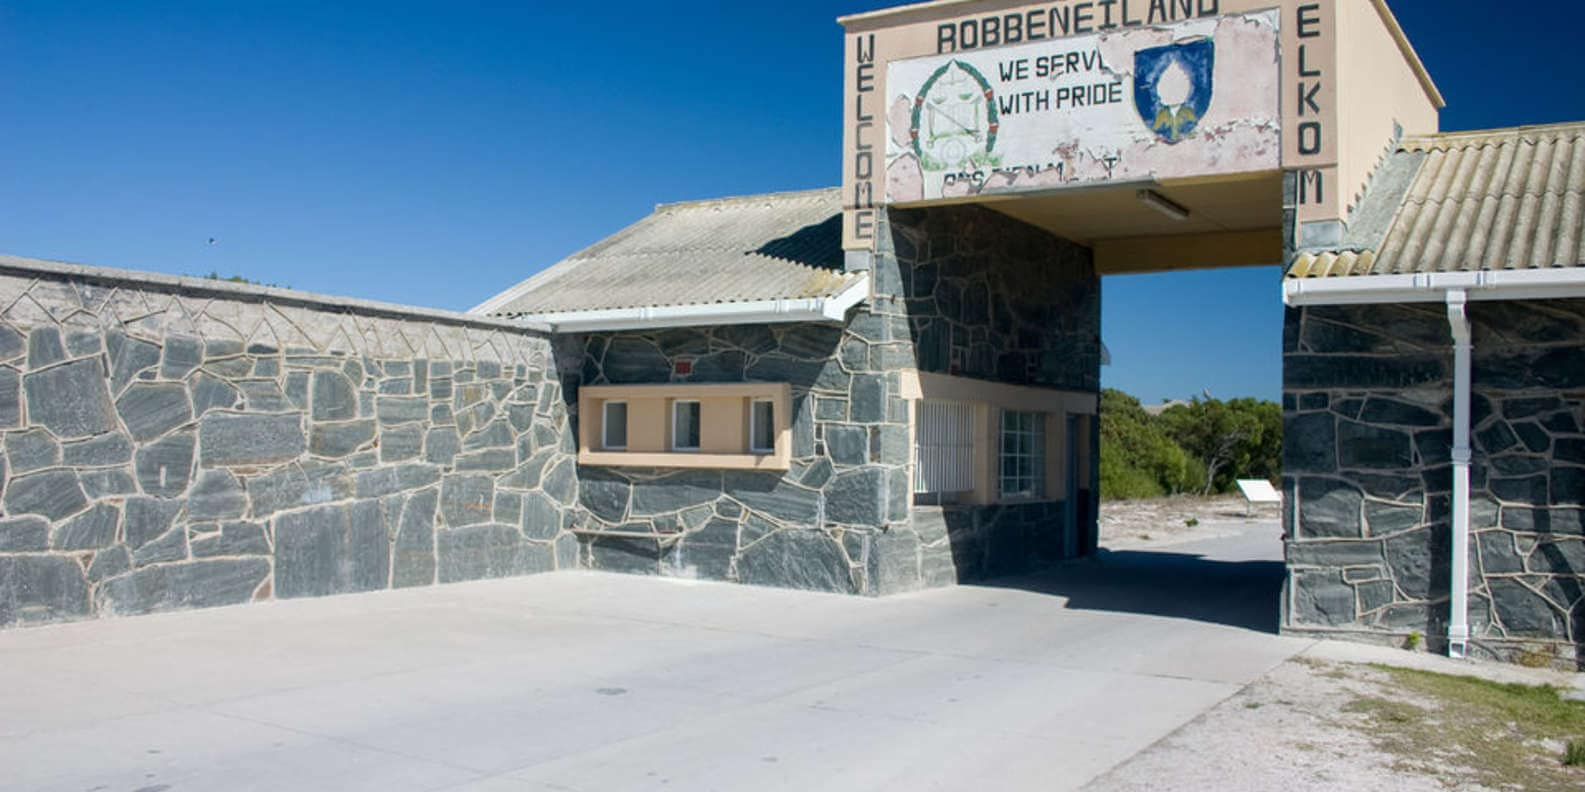 Landmarks in South Africa - Robben Island